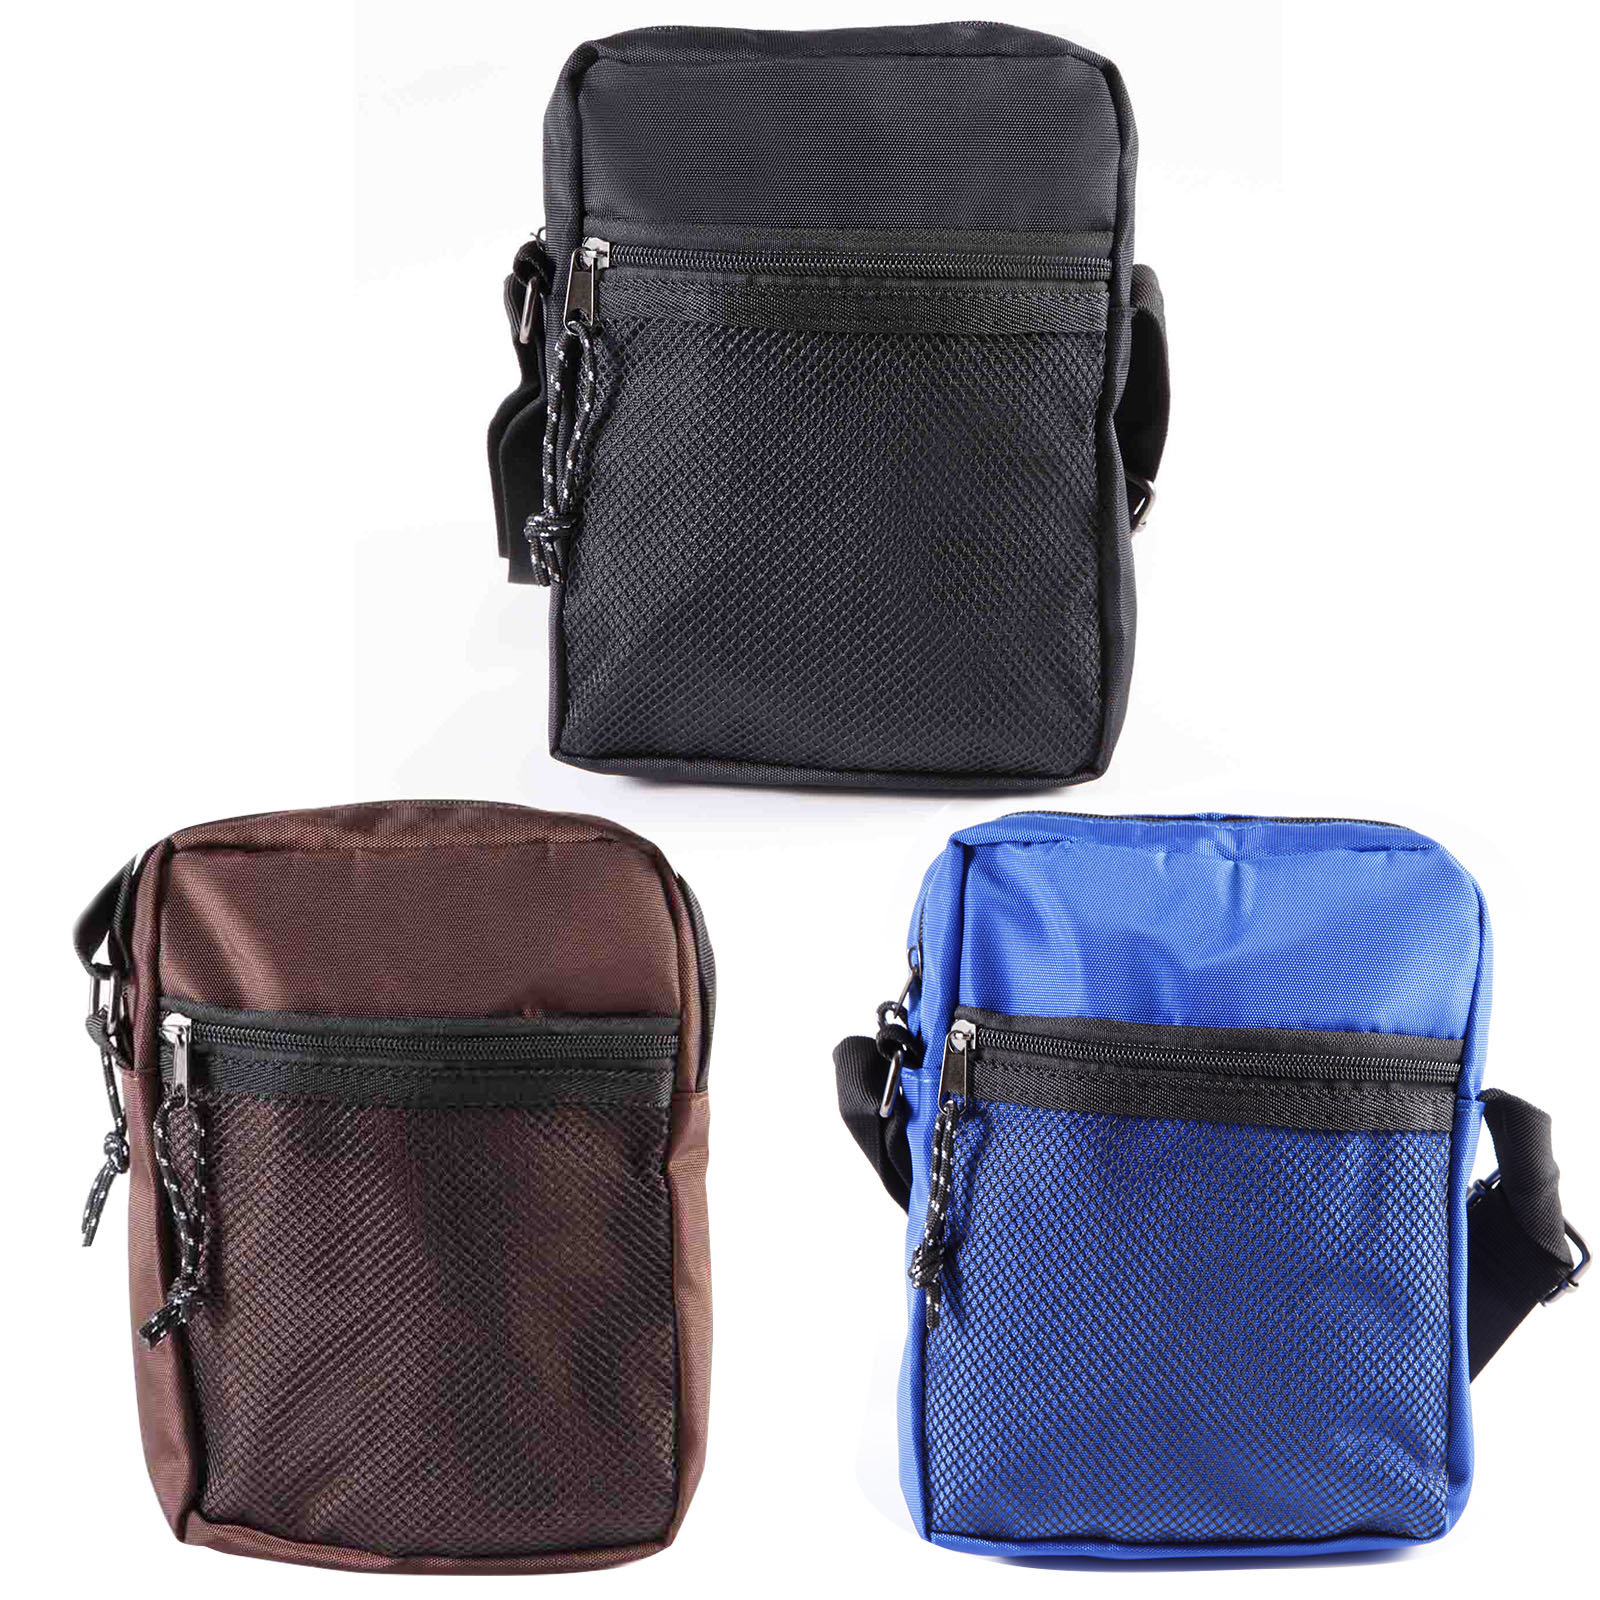 608eed036e81 Nylon Messenger Bags Casual Cross Body Shoulder Mesh Multi Pocket Handbag  Purse